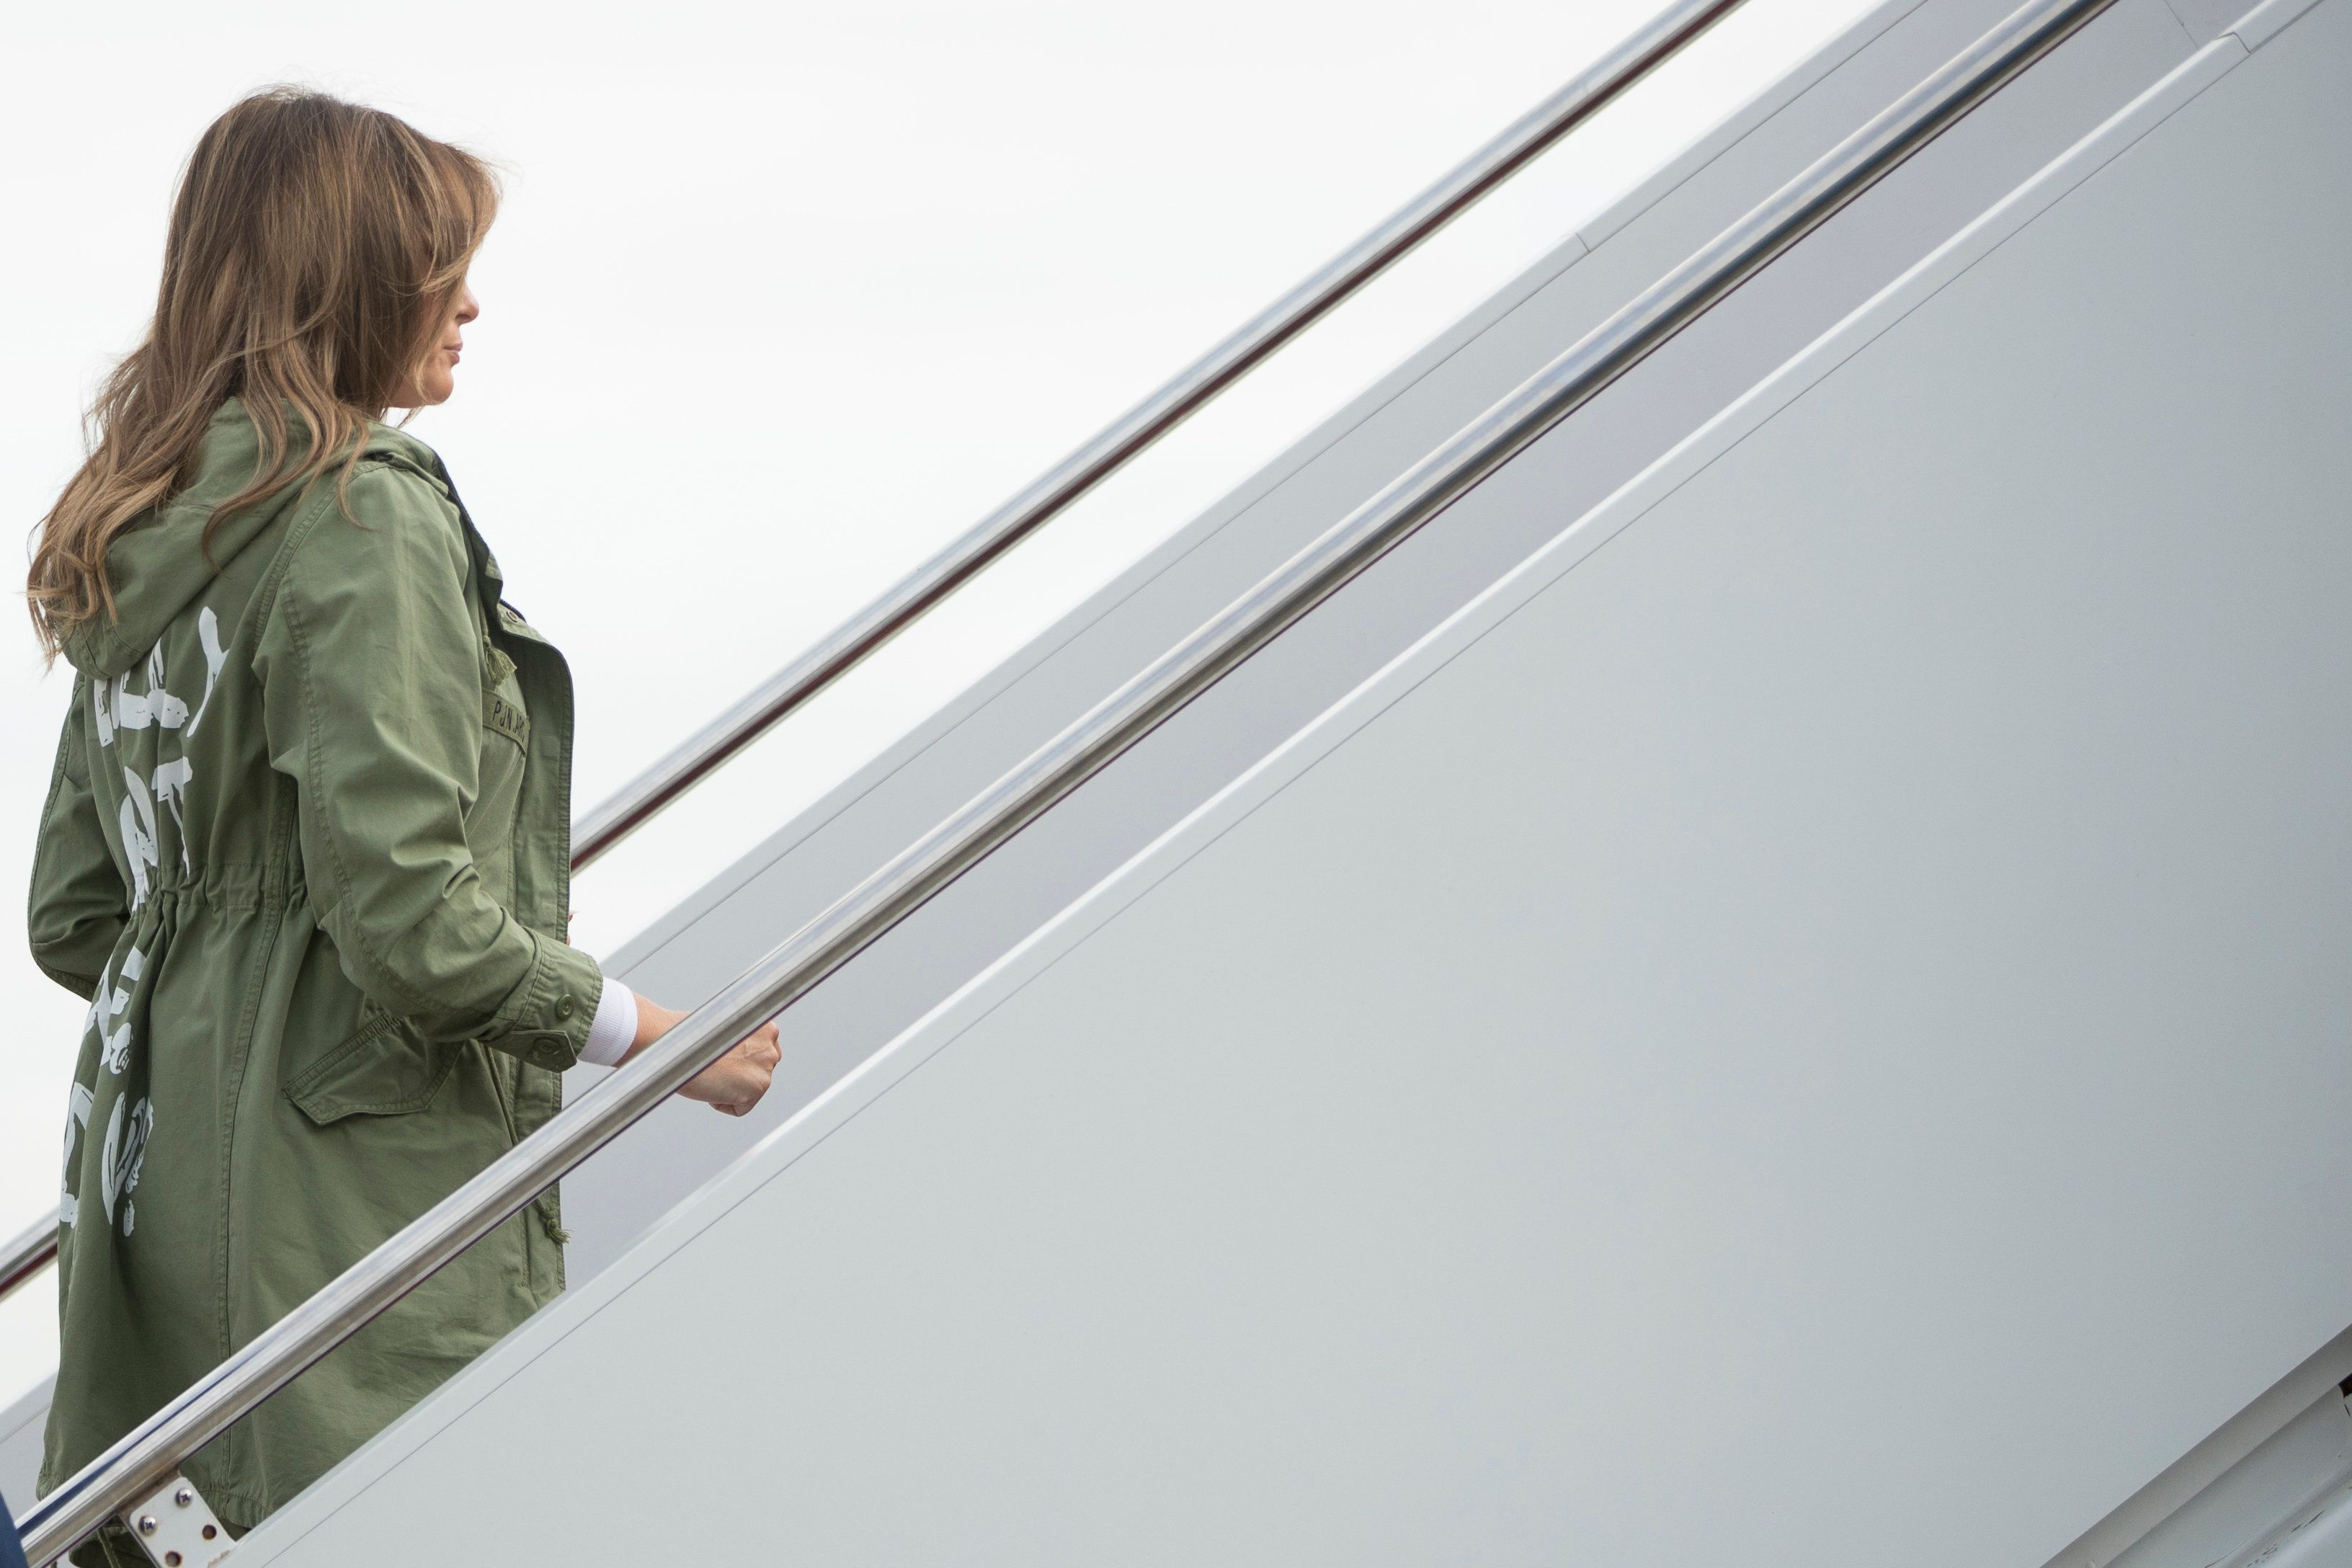 First lady Melania Trump boards a plane at Andrews Air Force Base in Maryland on June 21.